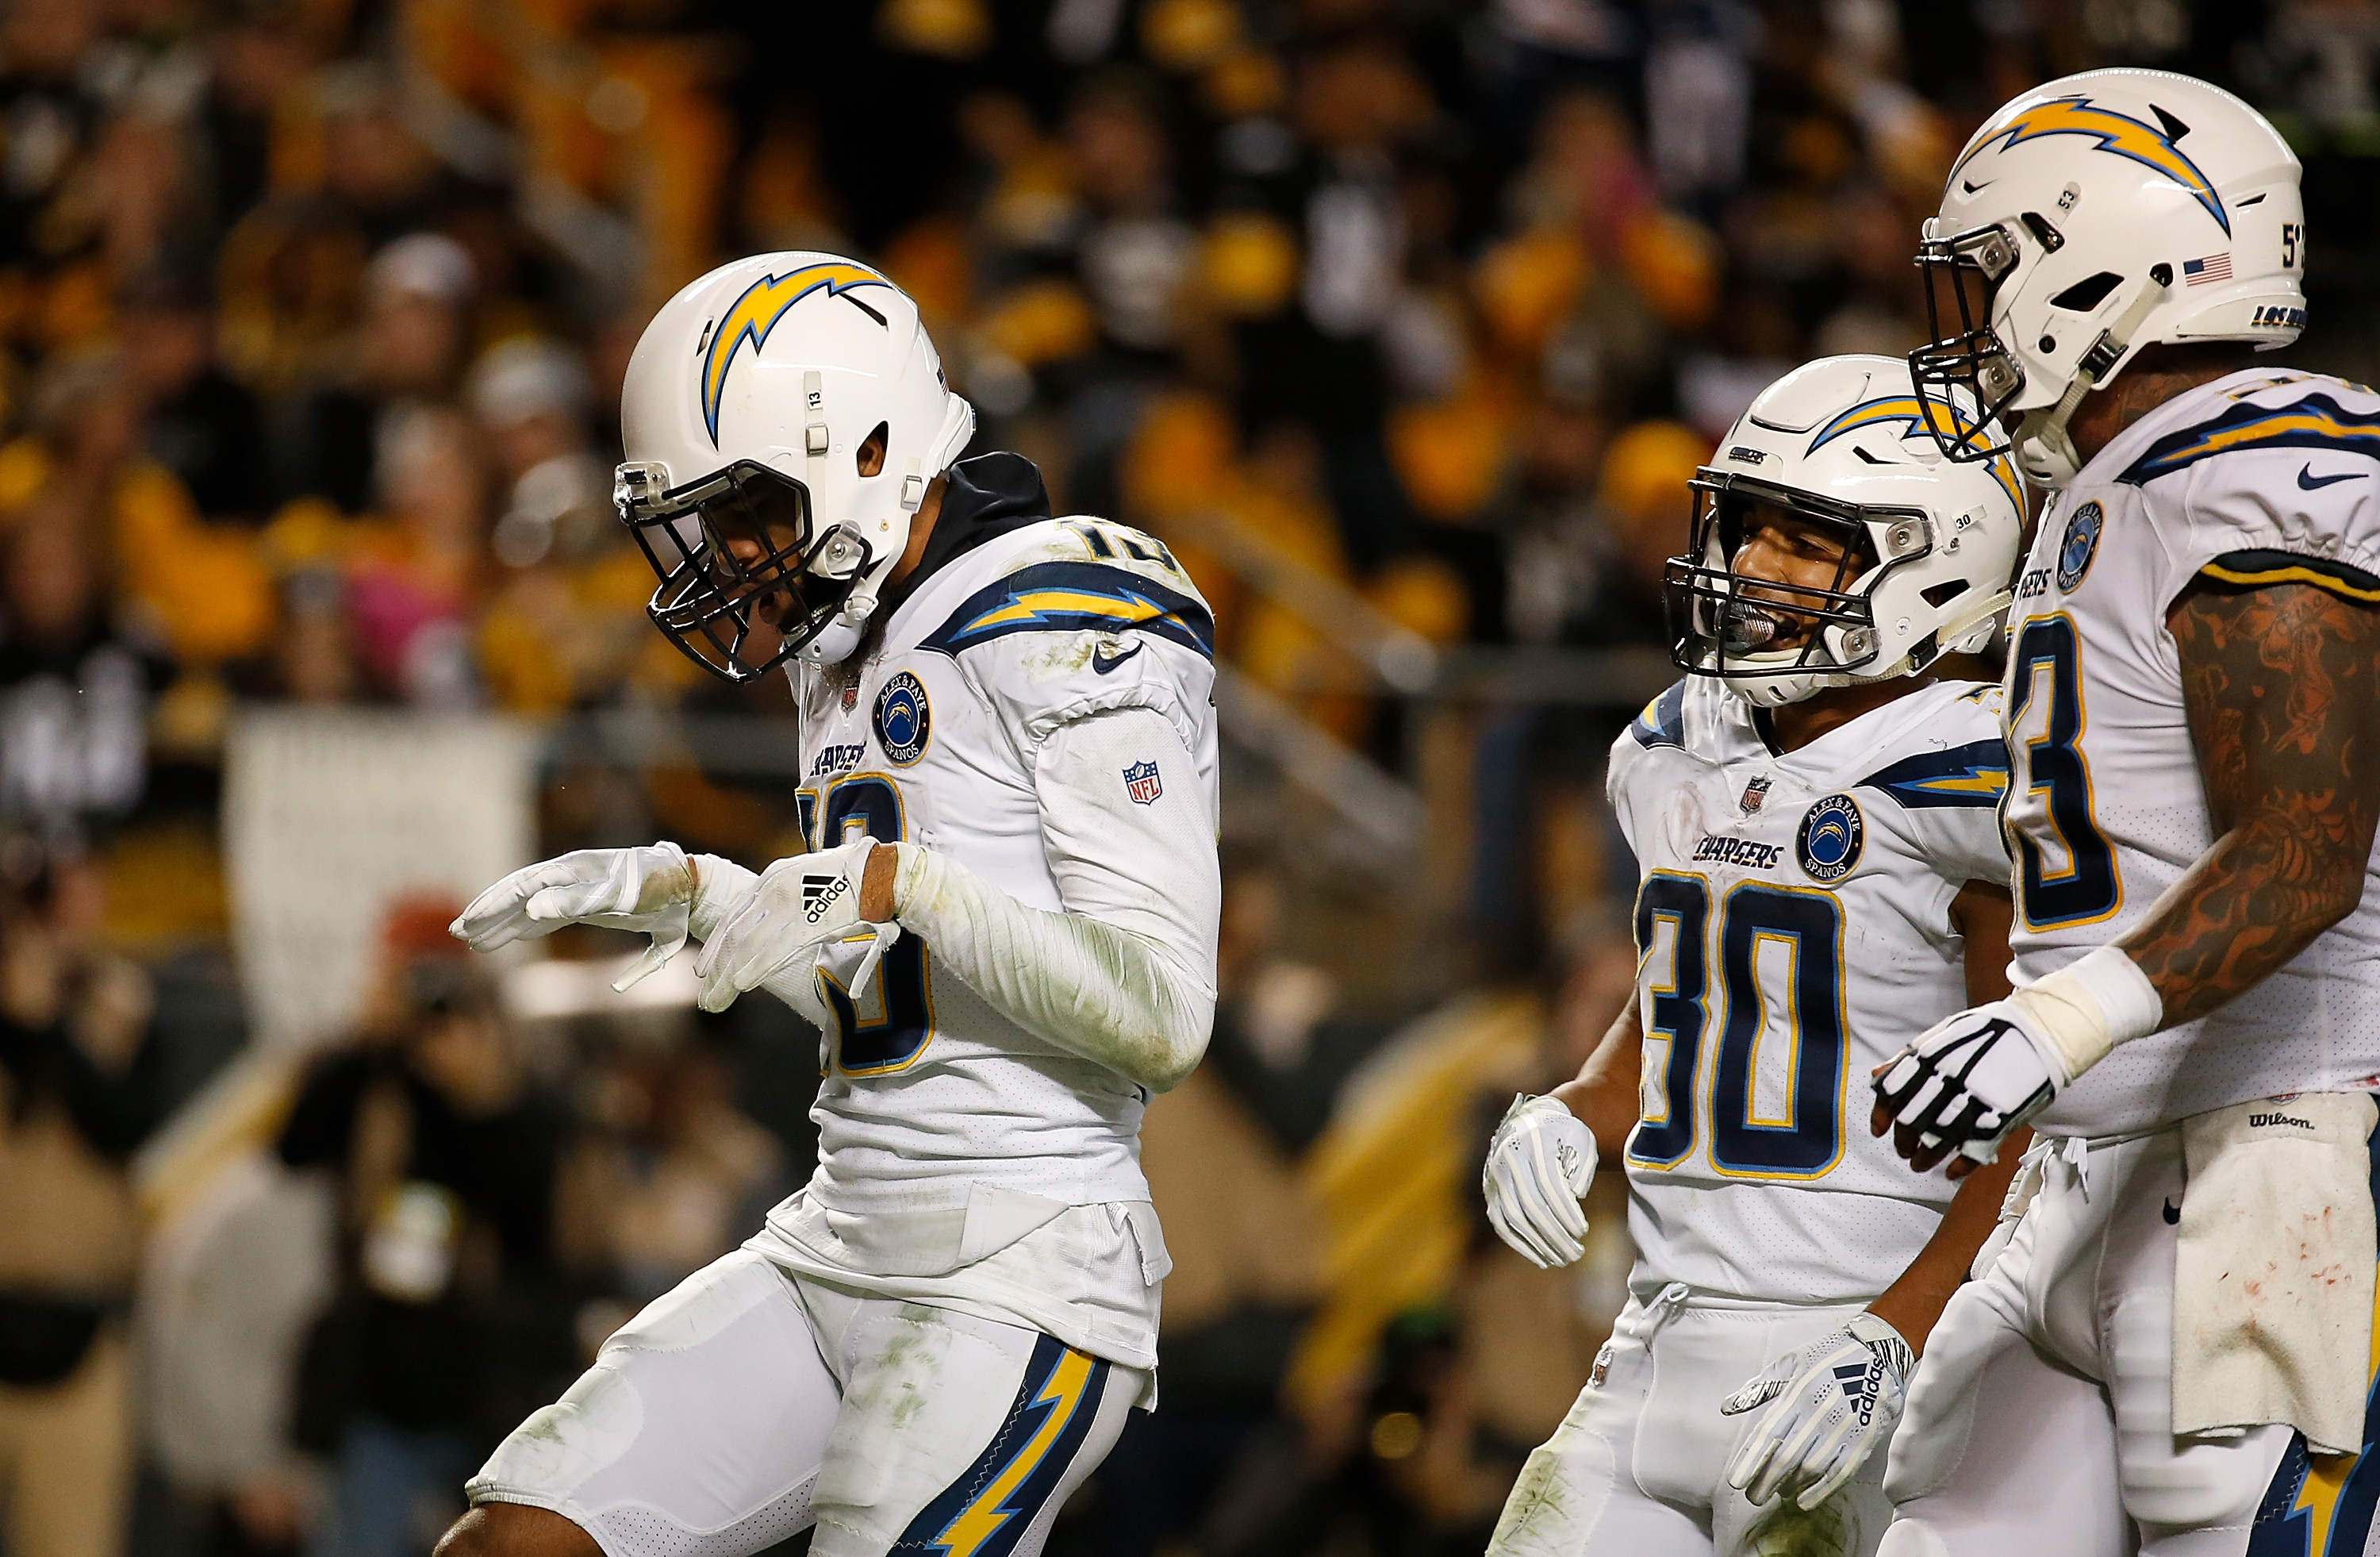 Keenan Allen(13) of the Los Angeles Chargers reacts after a 10-yard touchdown reception in the third quarter during the game against the Pittsburgh Steelers at Heinz Field on Dec. 2, 2018, in Pittsburgh, Pennsylvania. (Photo by Justin K. Aller/Getty Images)